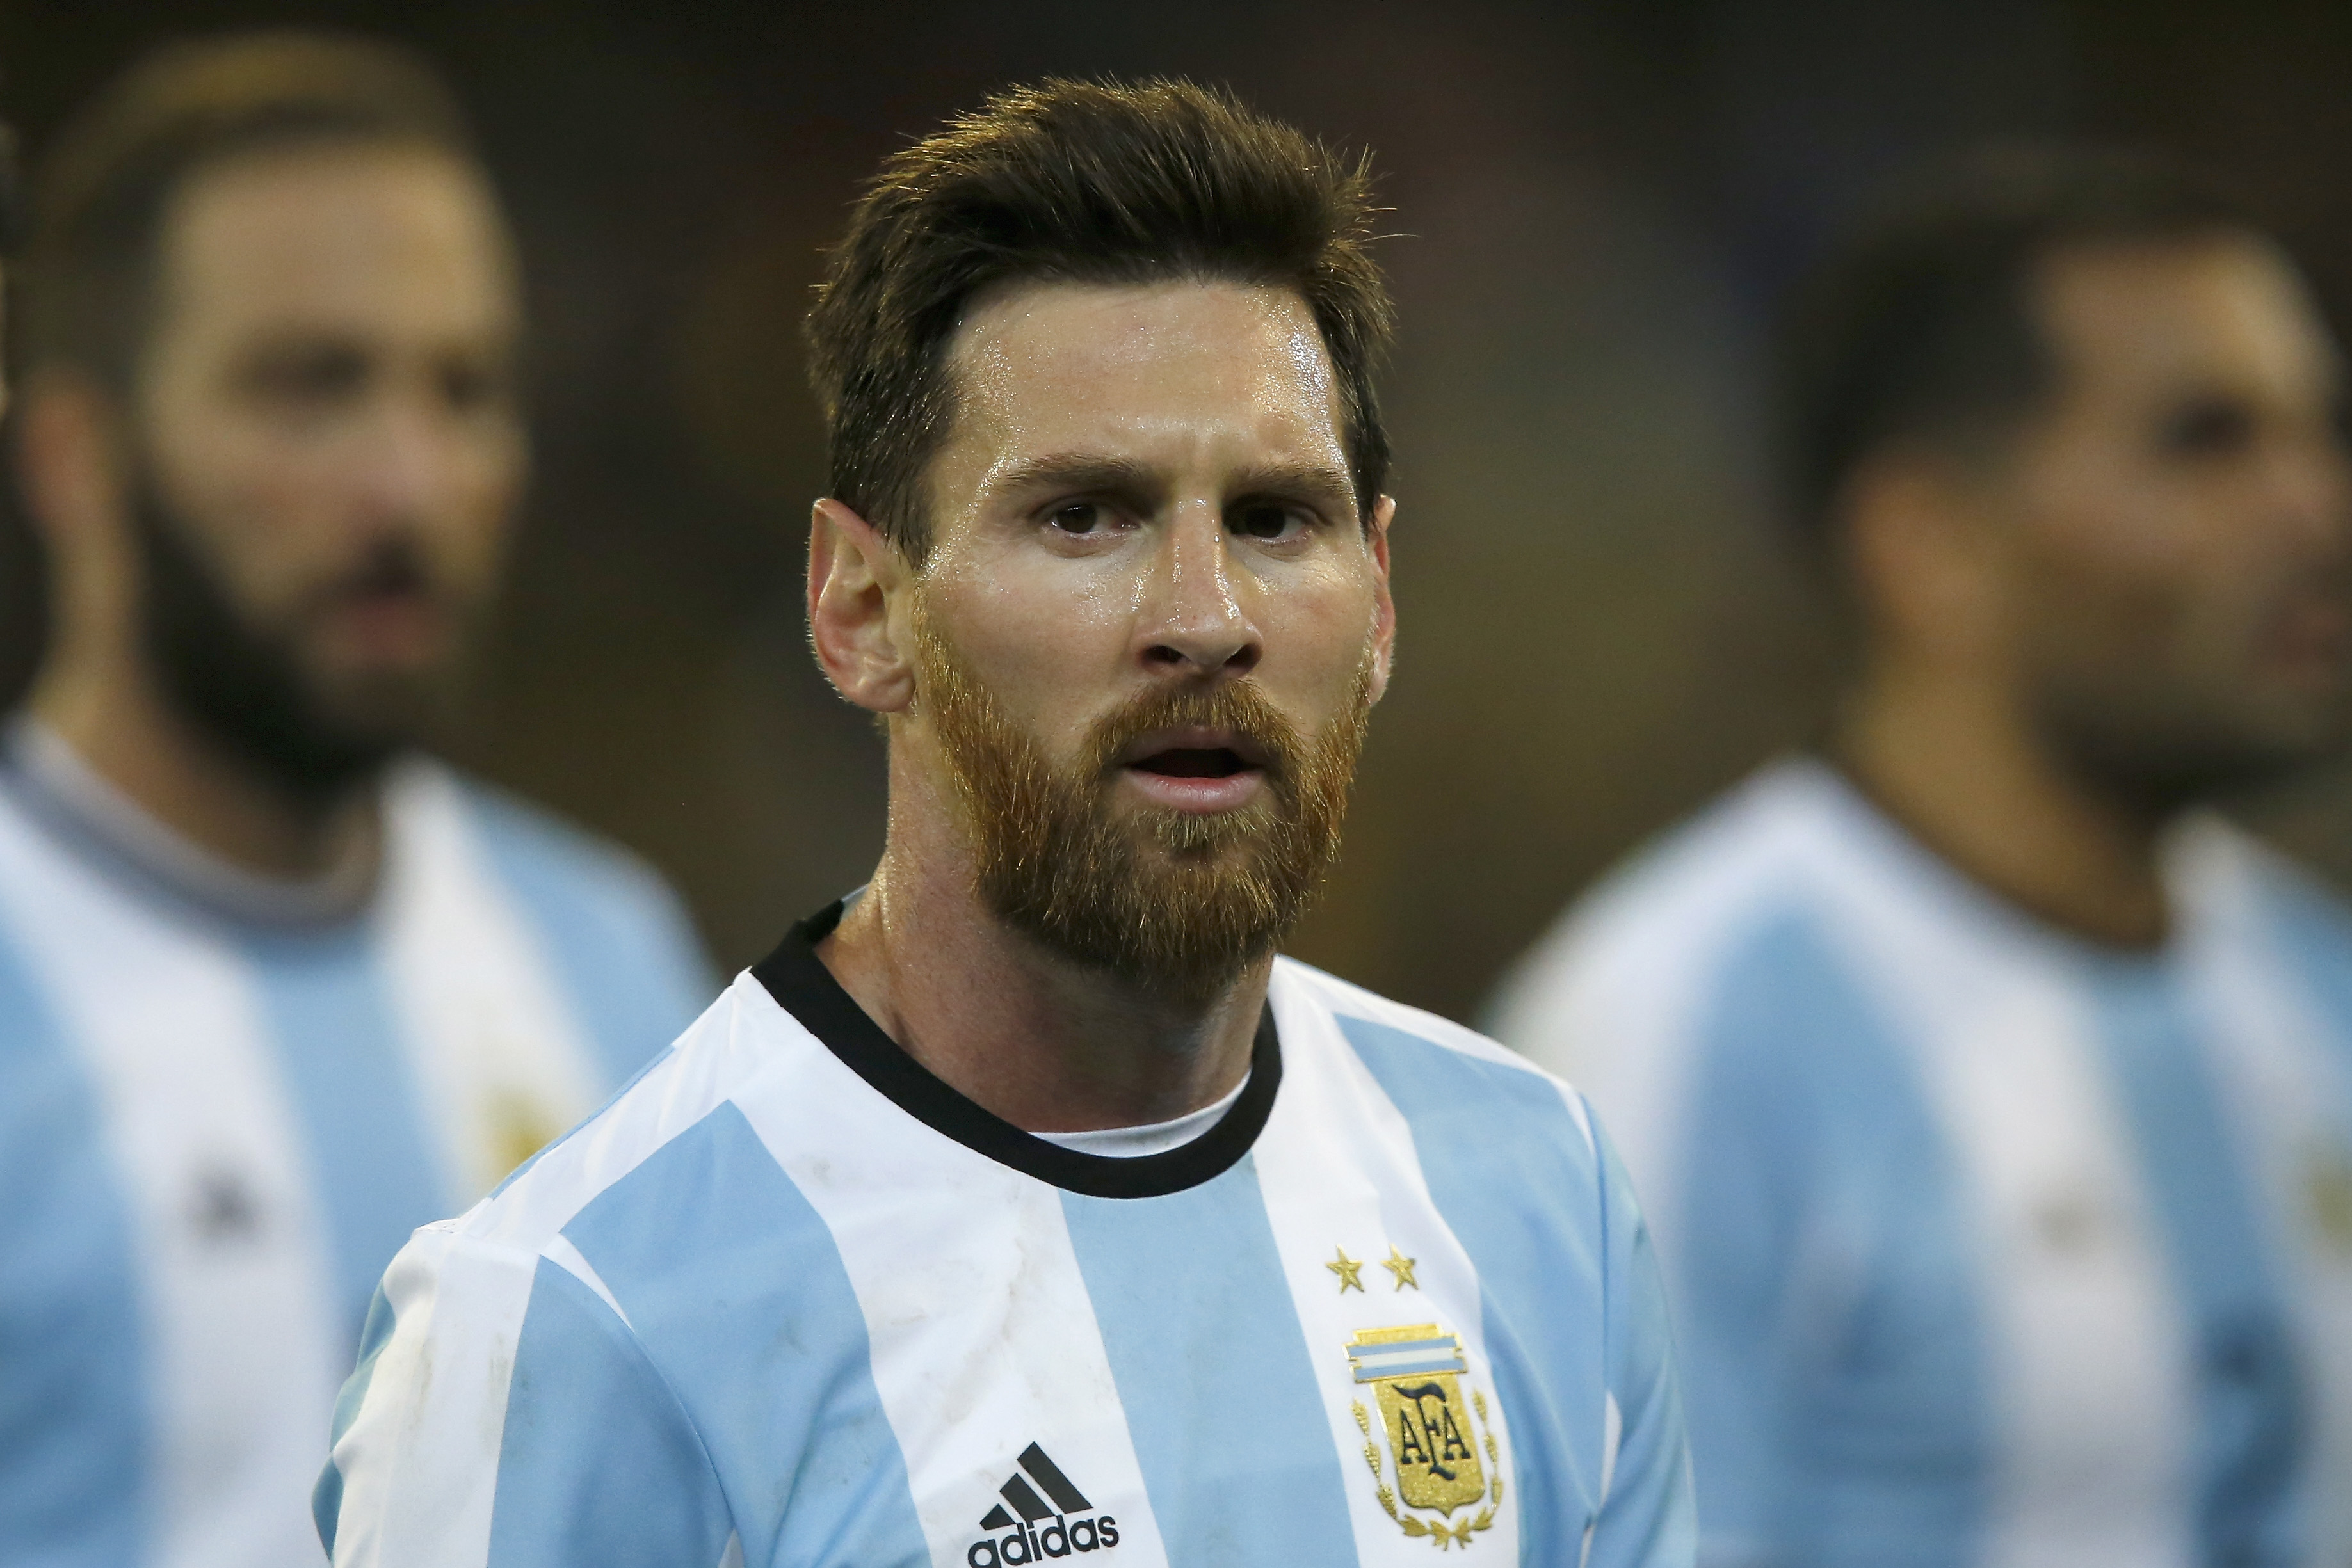 Colombia vs Argentina live streaming: Watch World Cup qualifier online